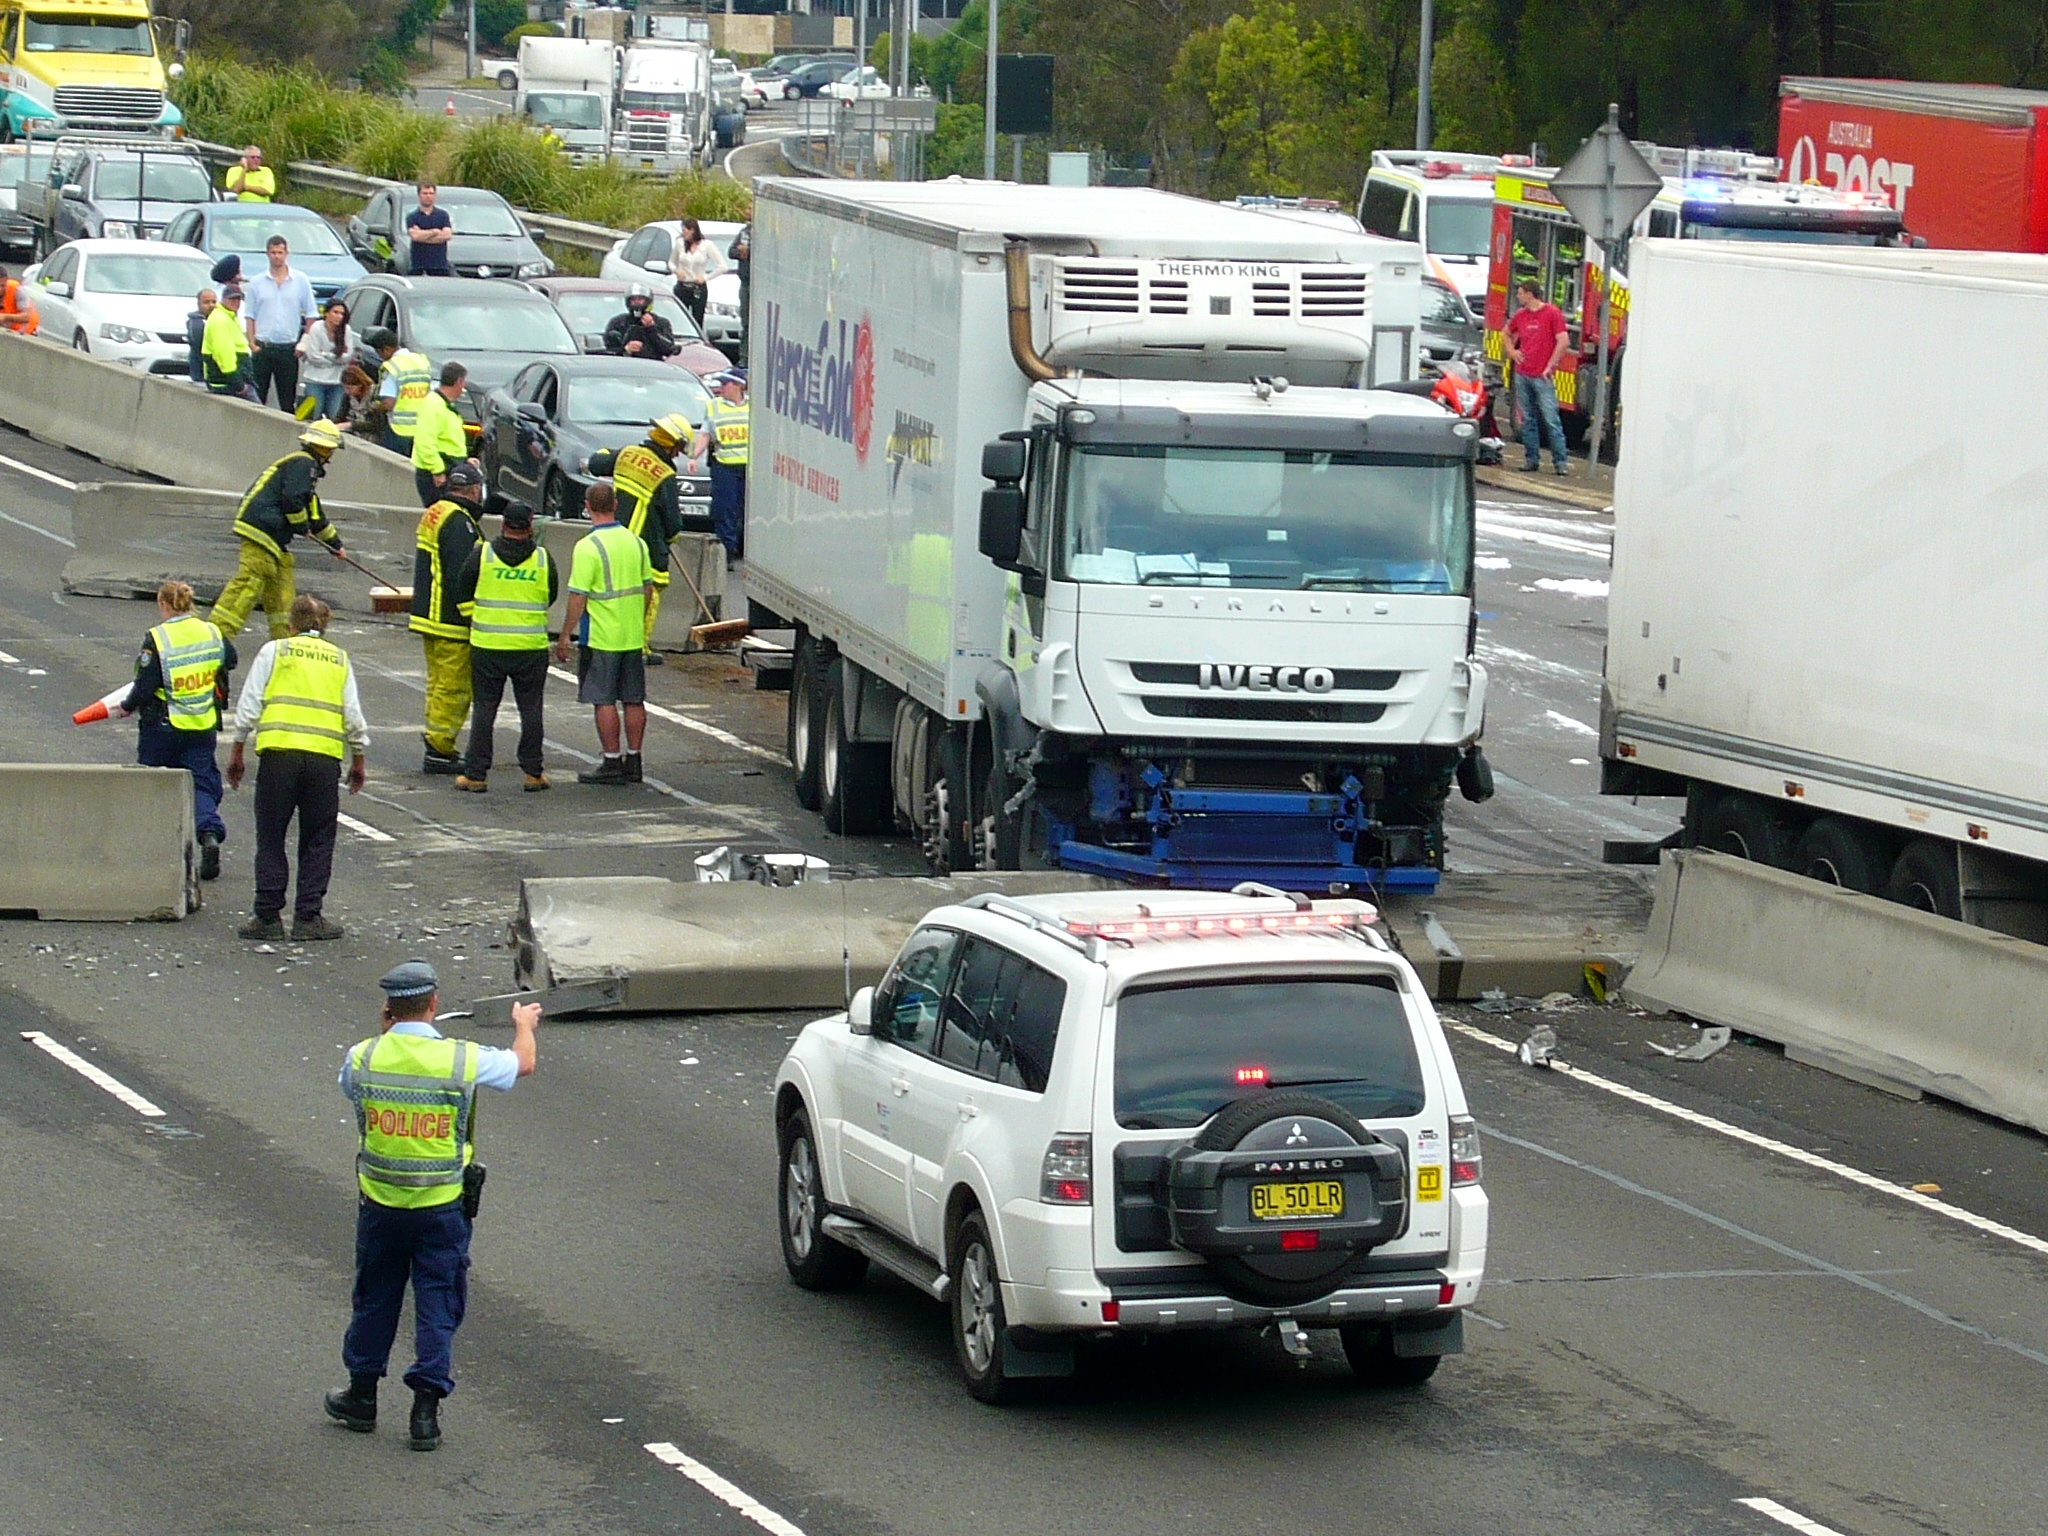 File:Multi vehicle accident - M4 Motorway, Sydney, NSW